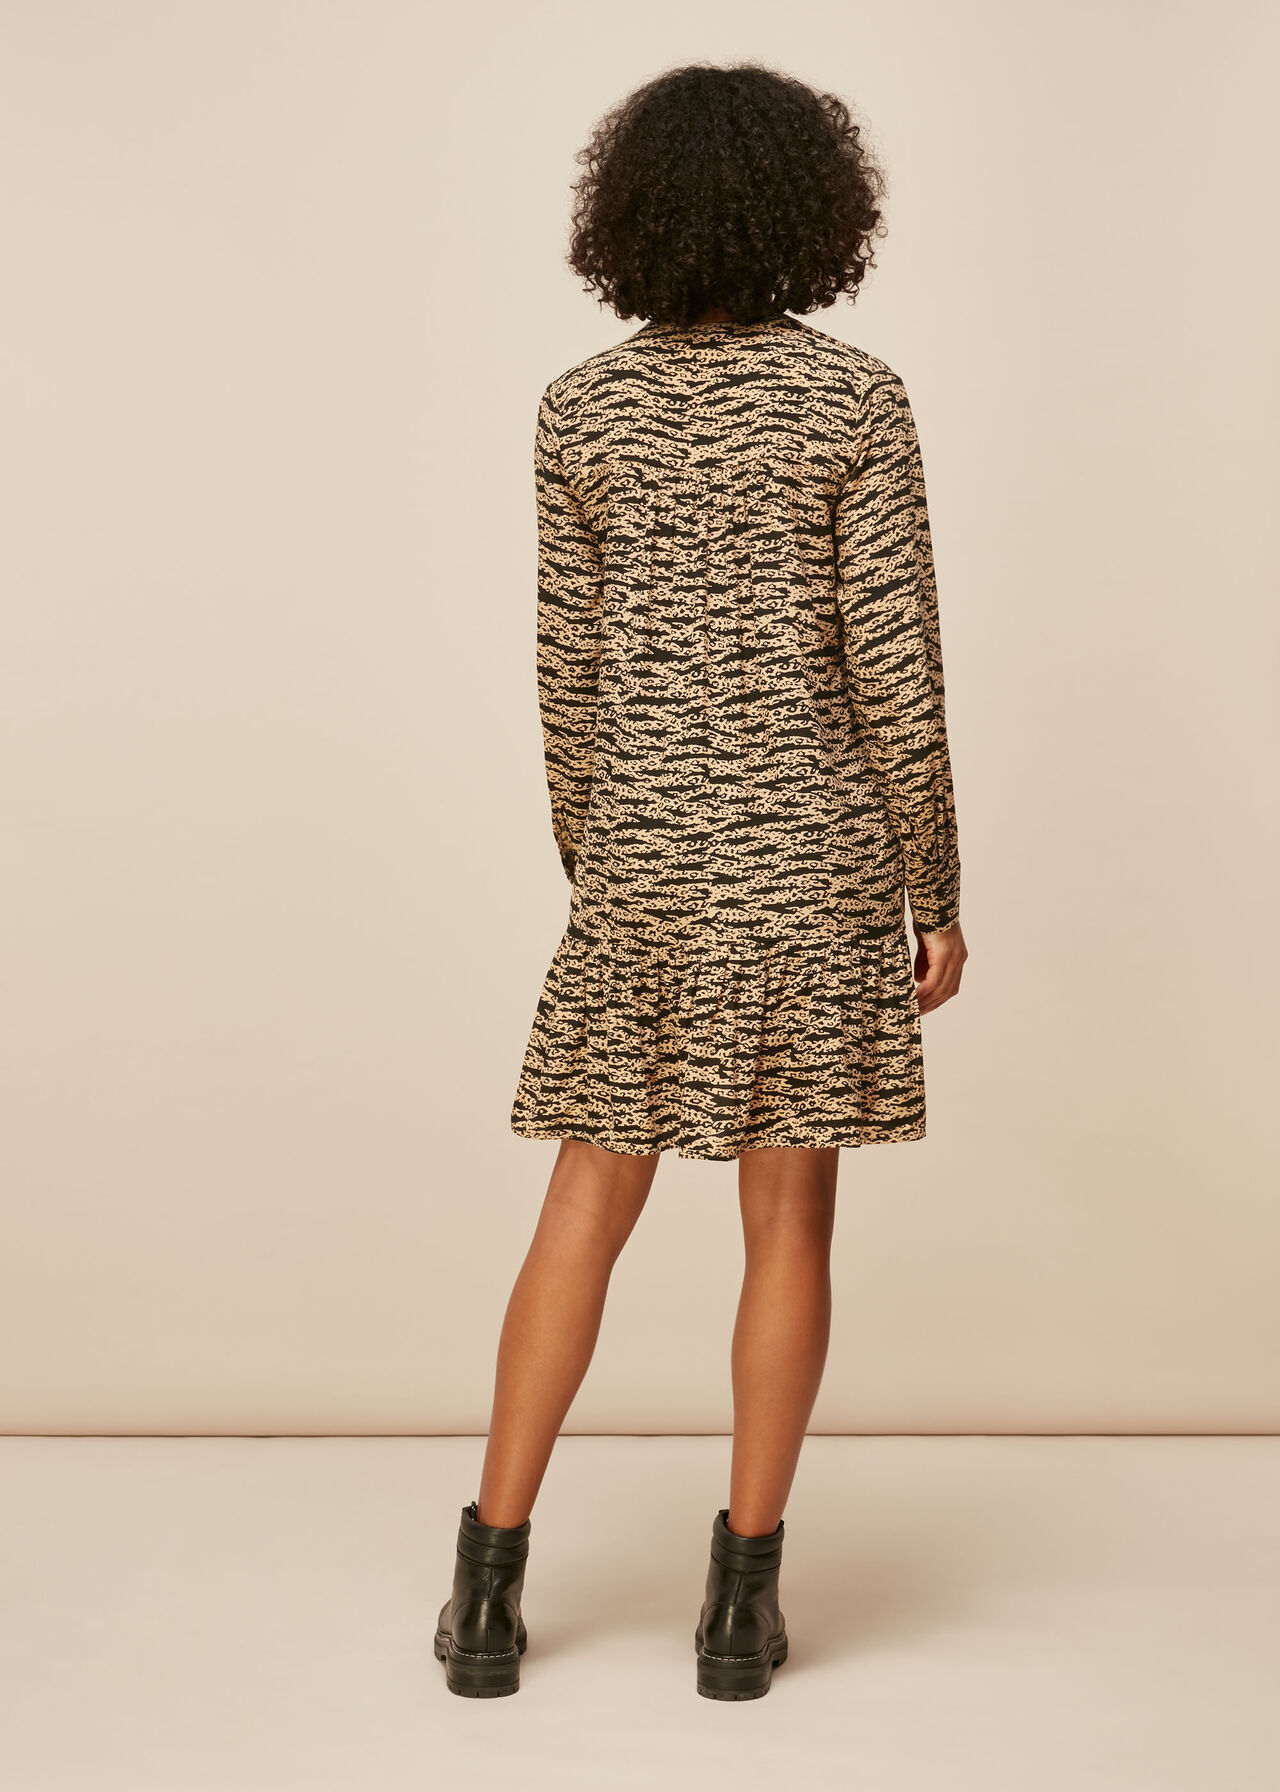 Tiger Leopard Dress